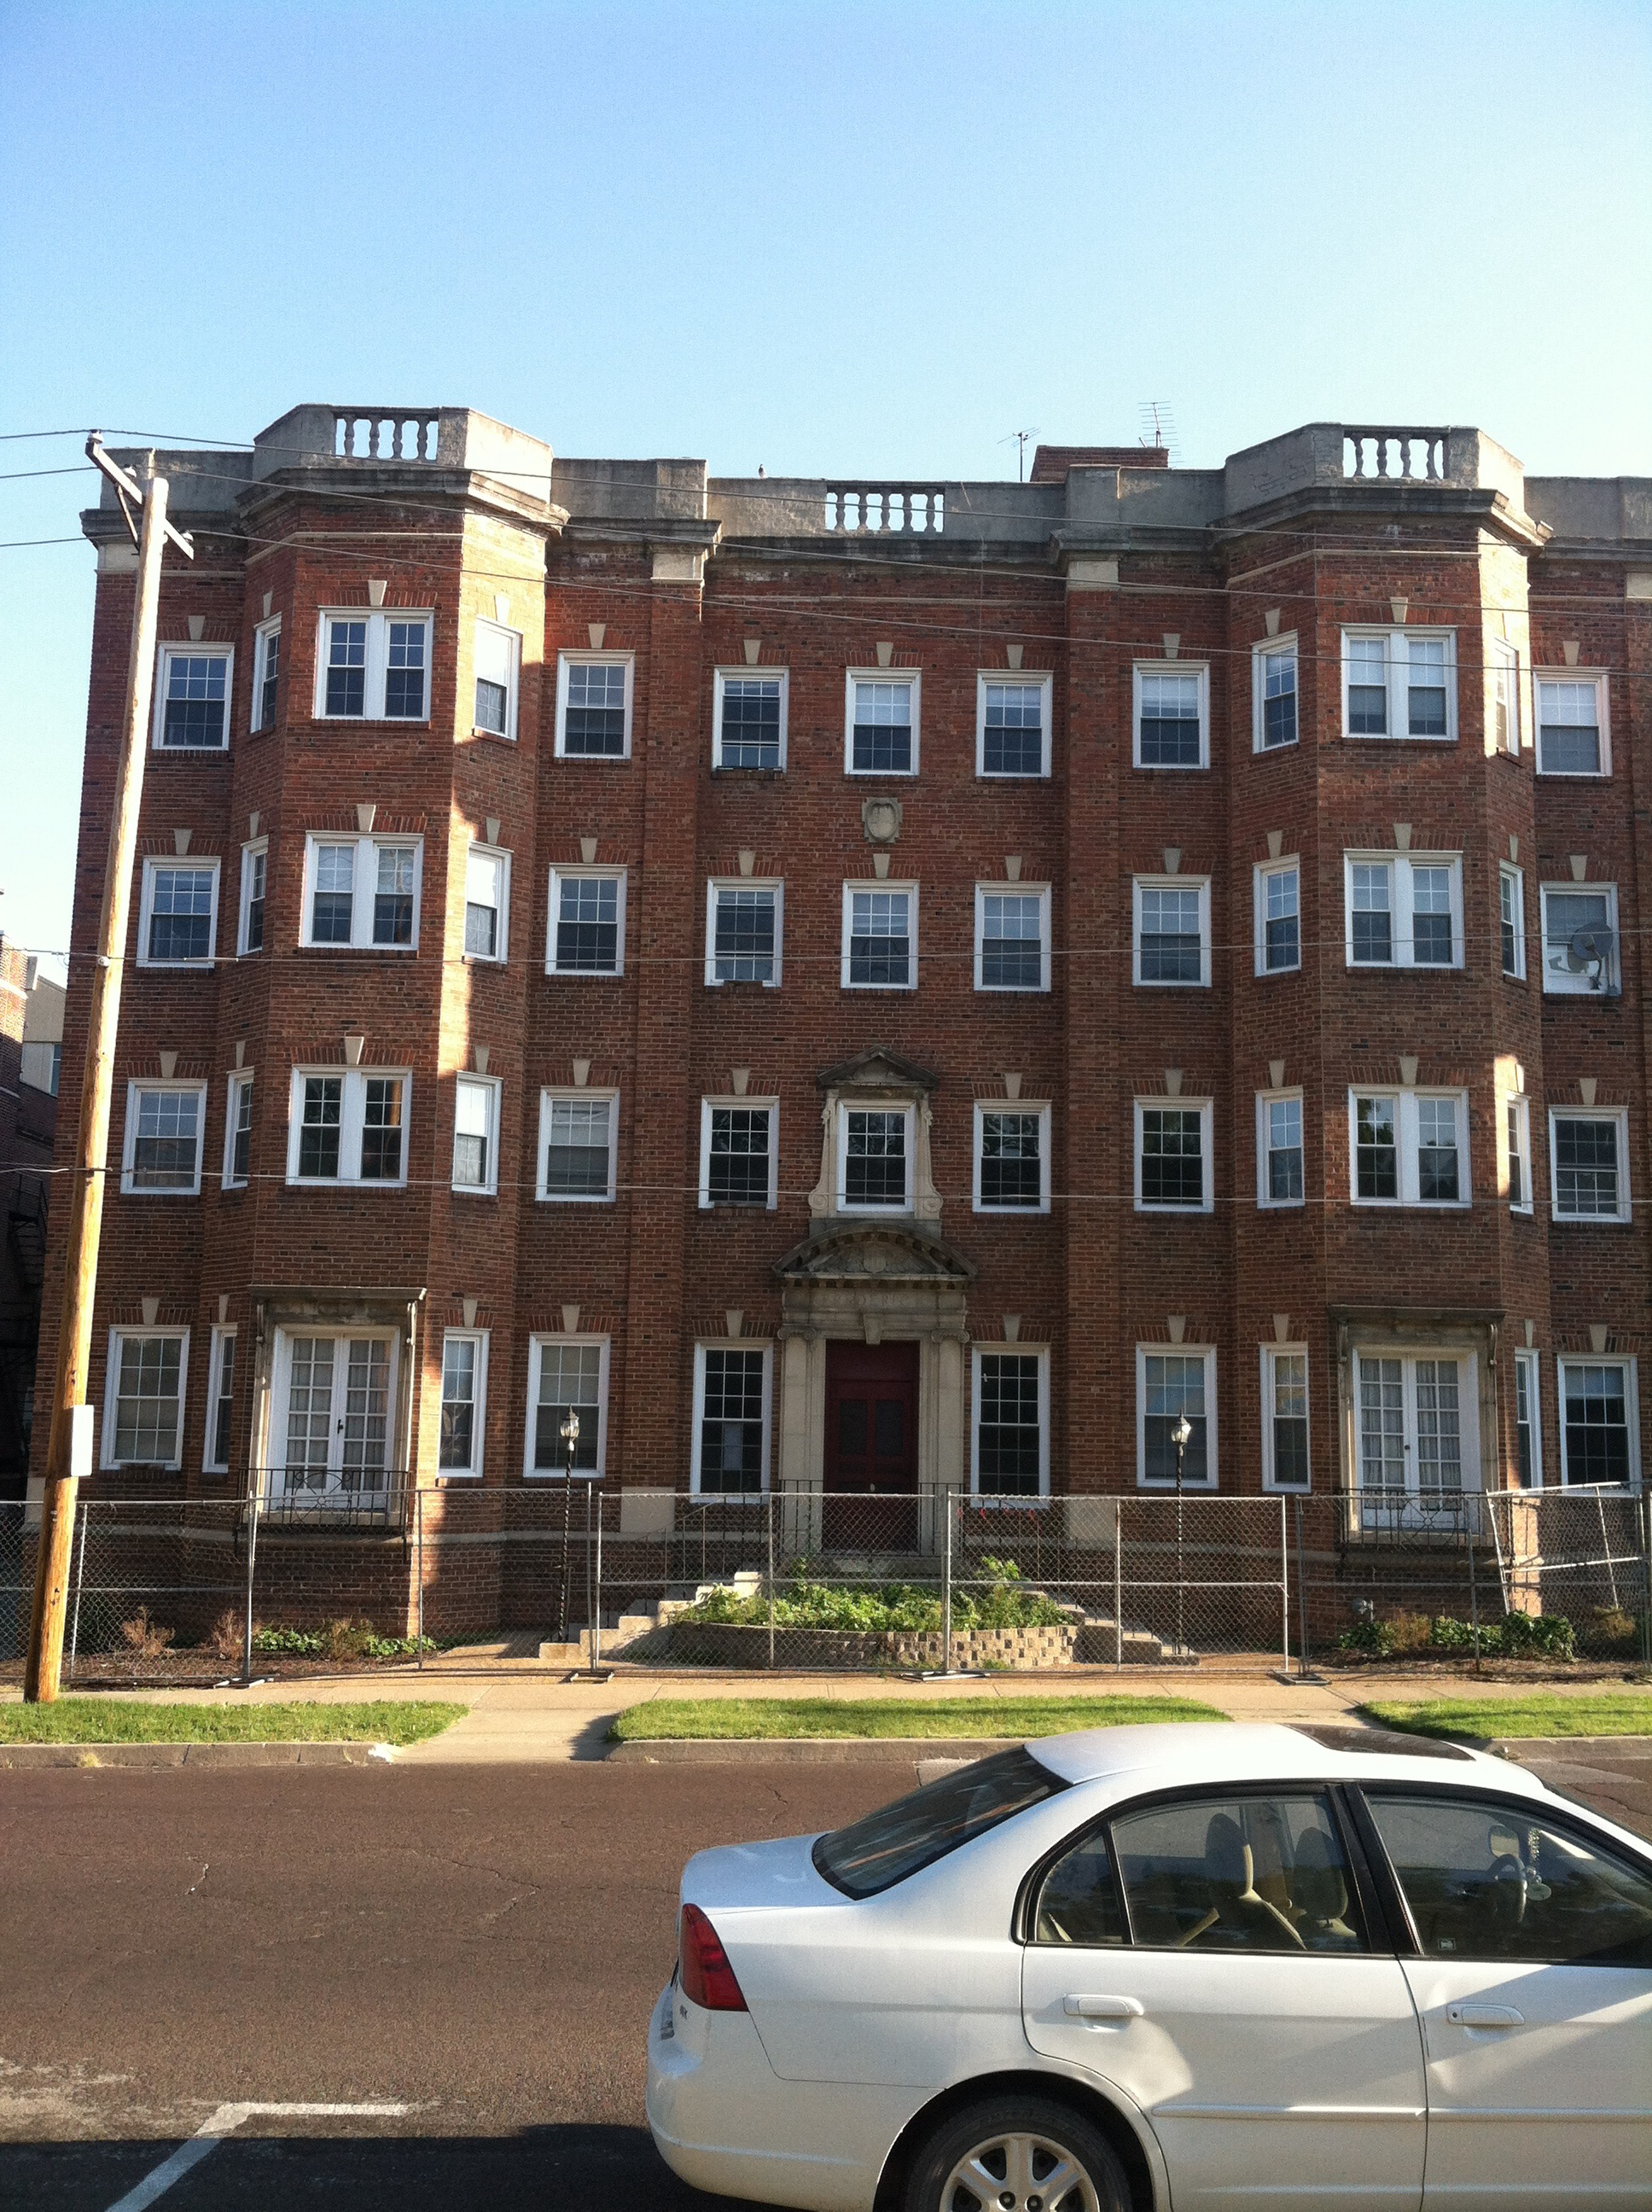 2013 image of the Frederick Apartments in Columbia, MO